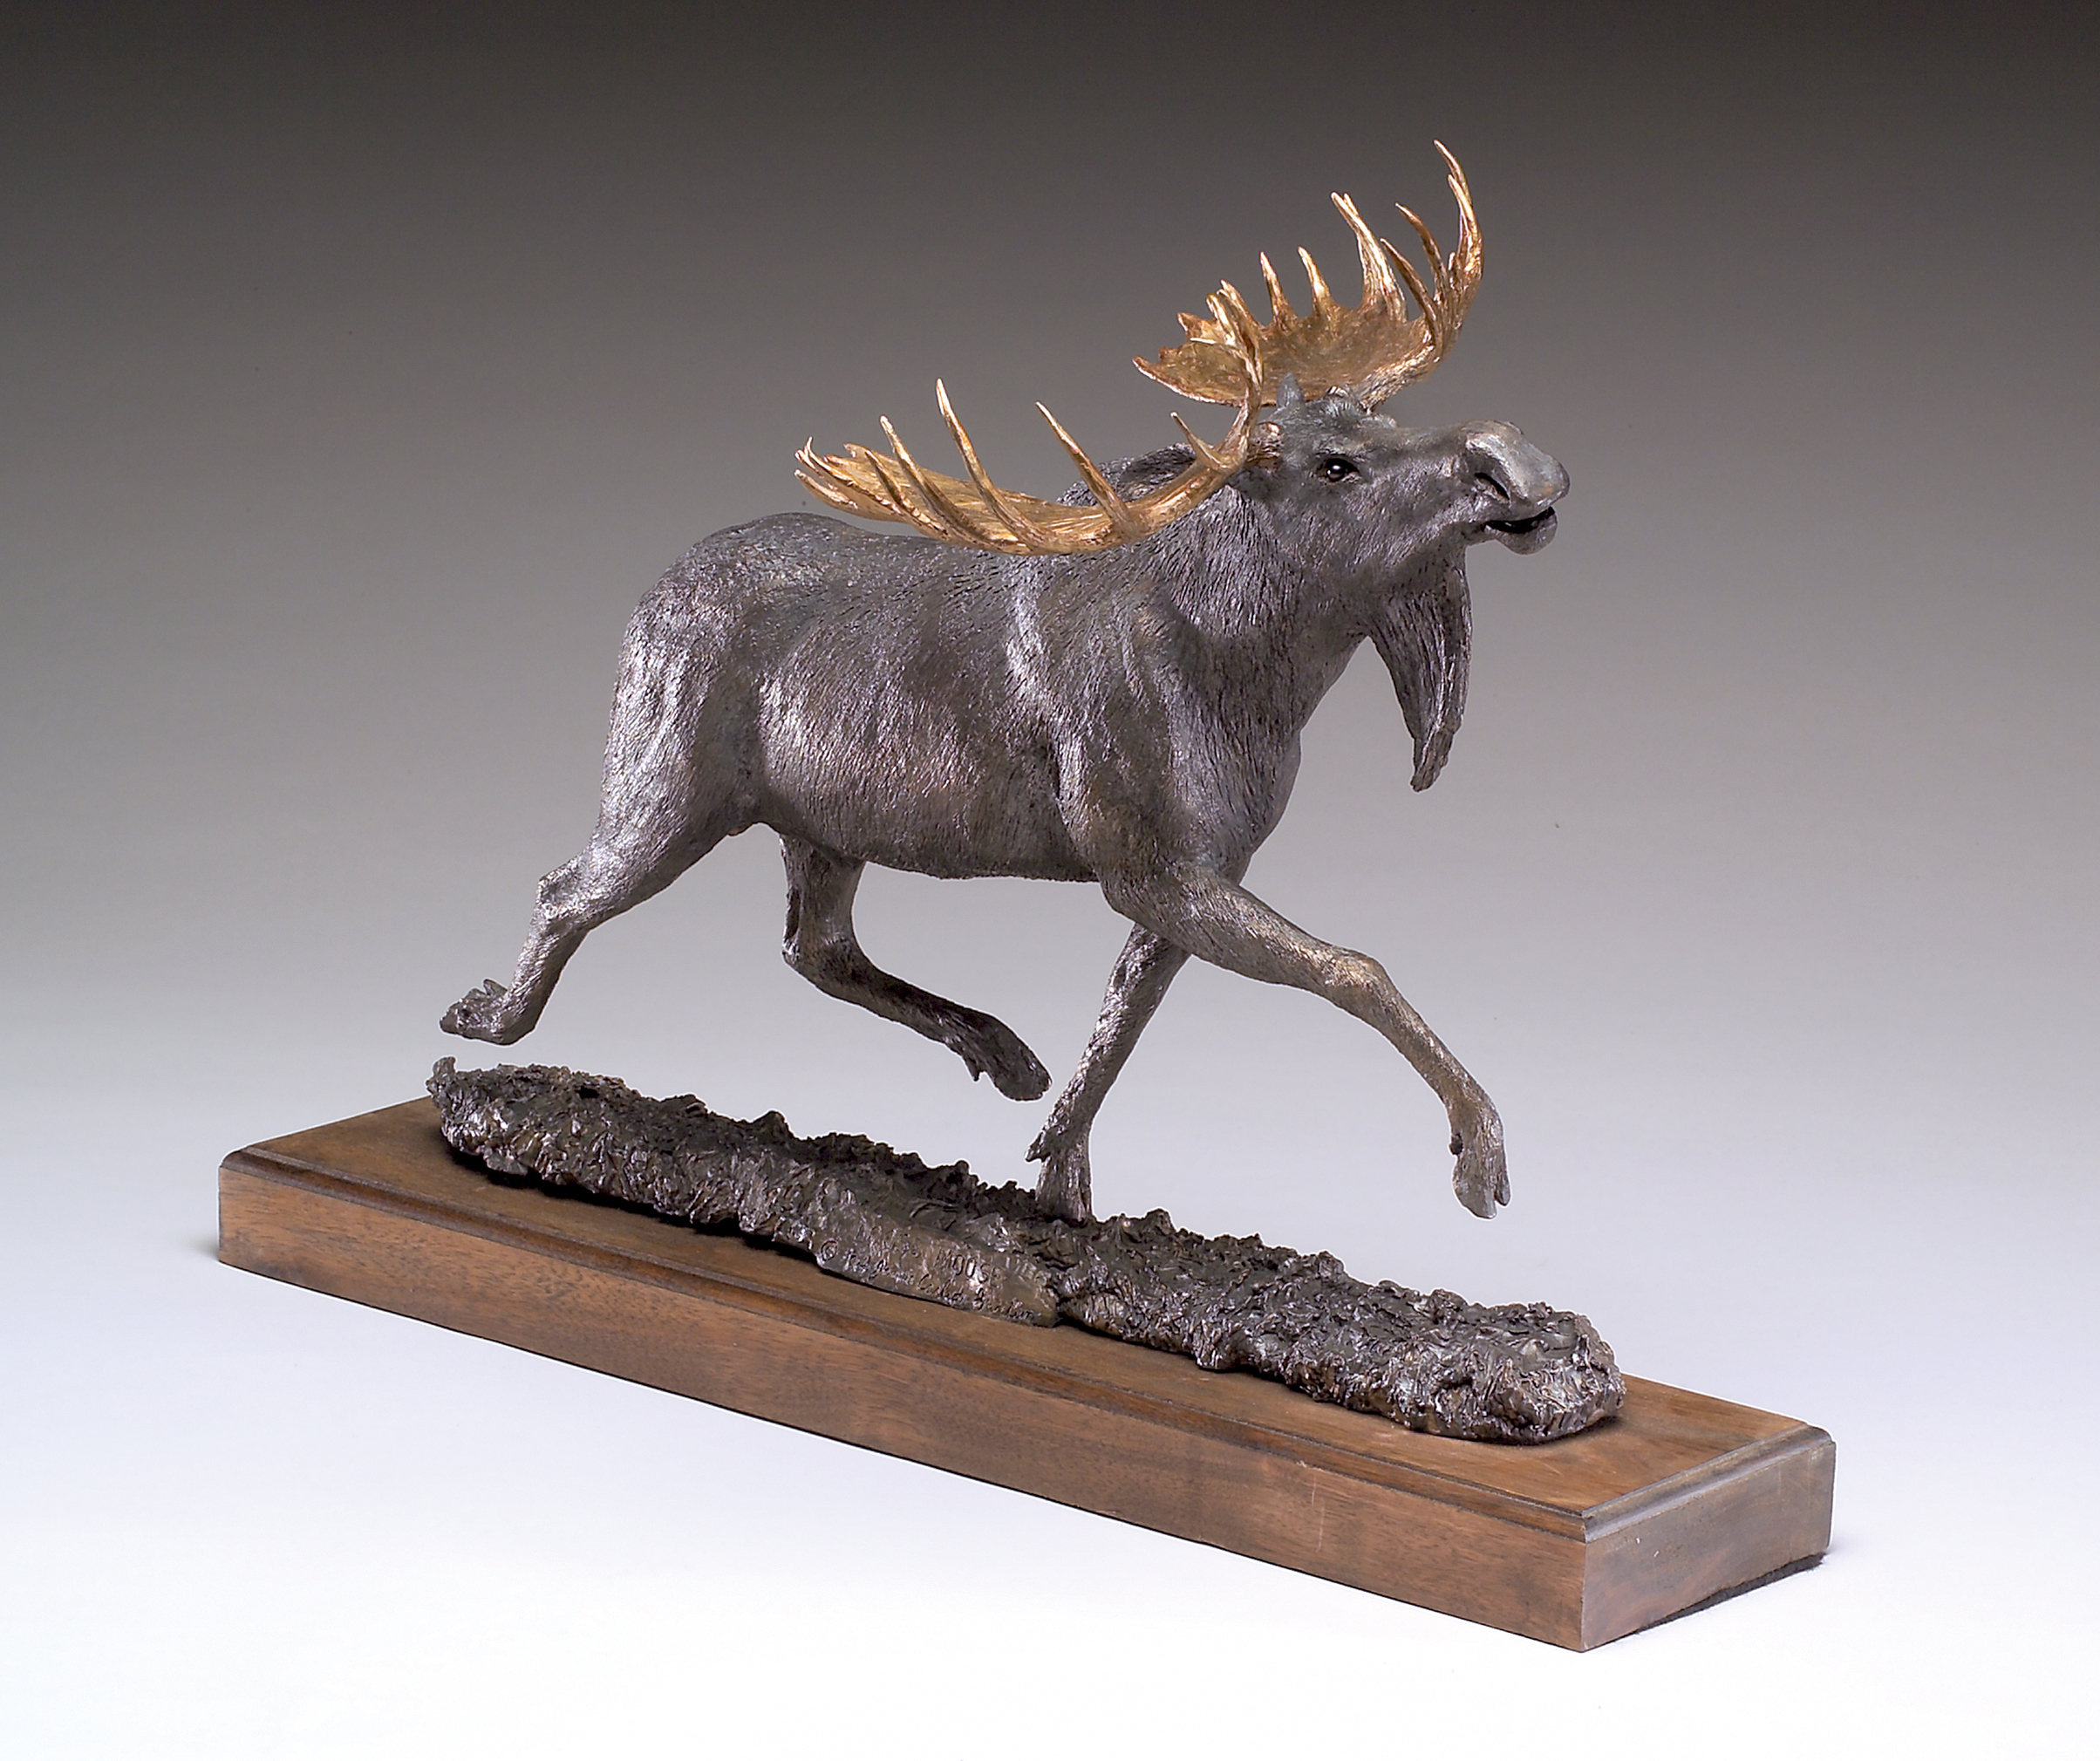 """Loose Moose"" by Jim Gartin 24"" x 6.5"" x 17""H - Bronze"